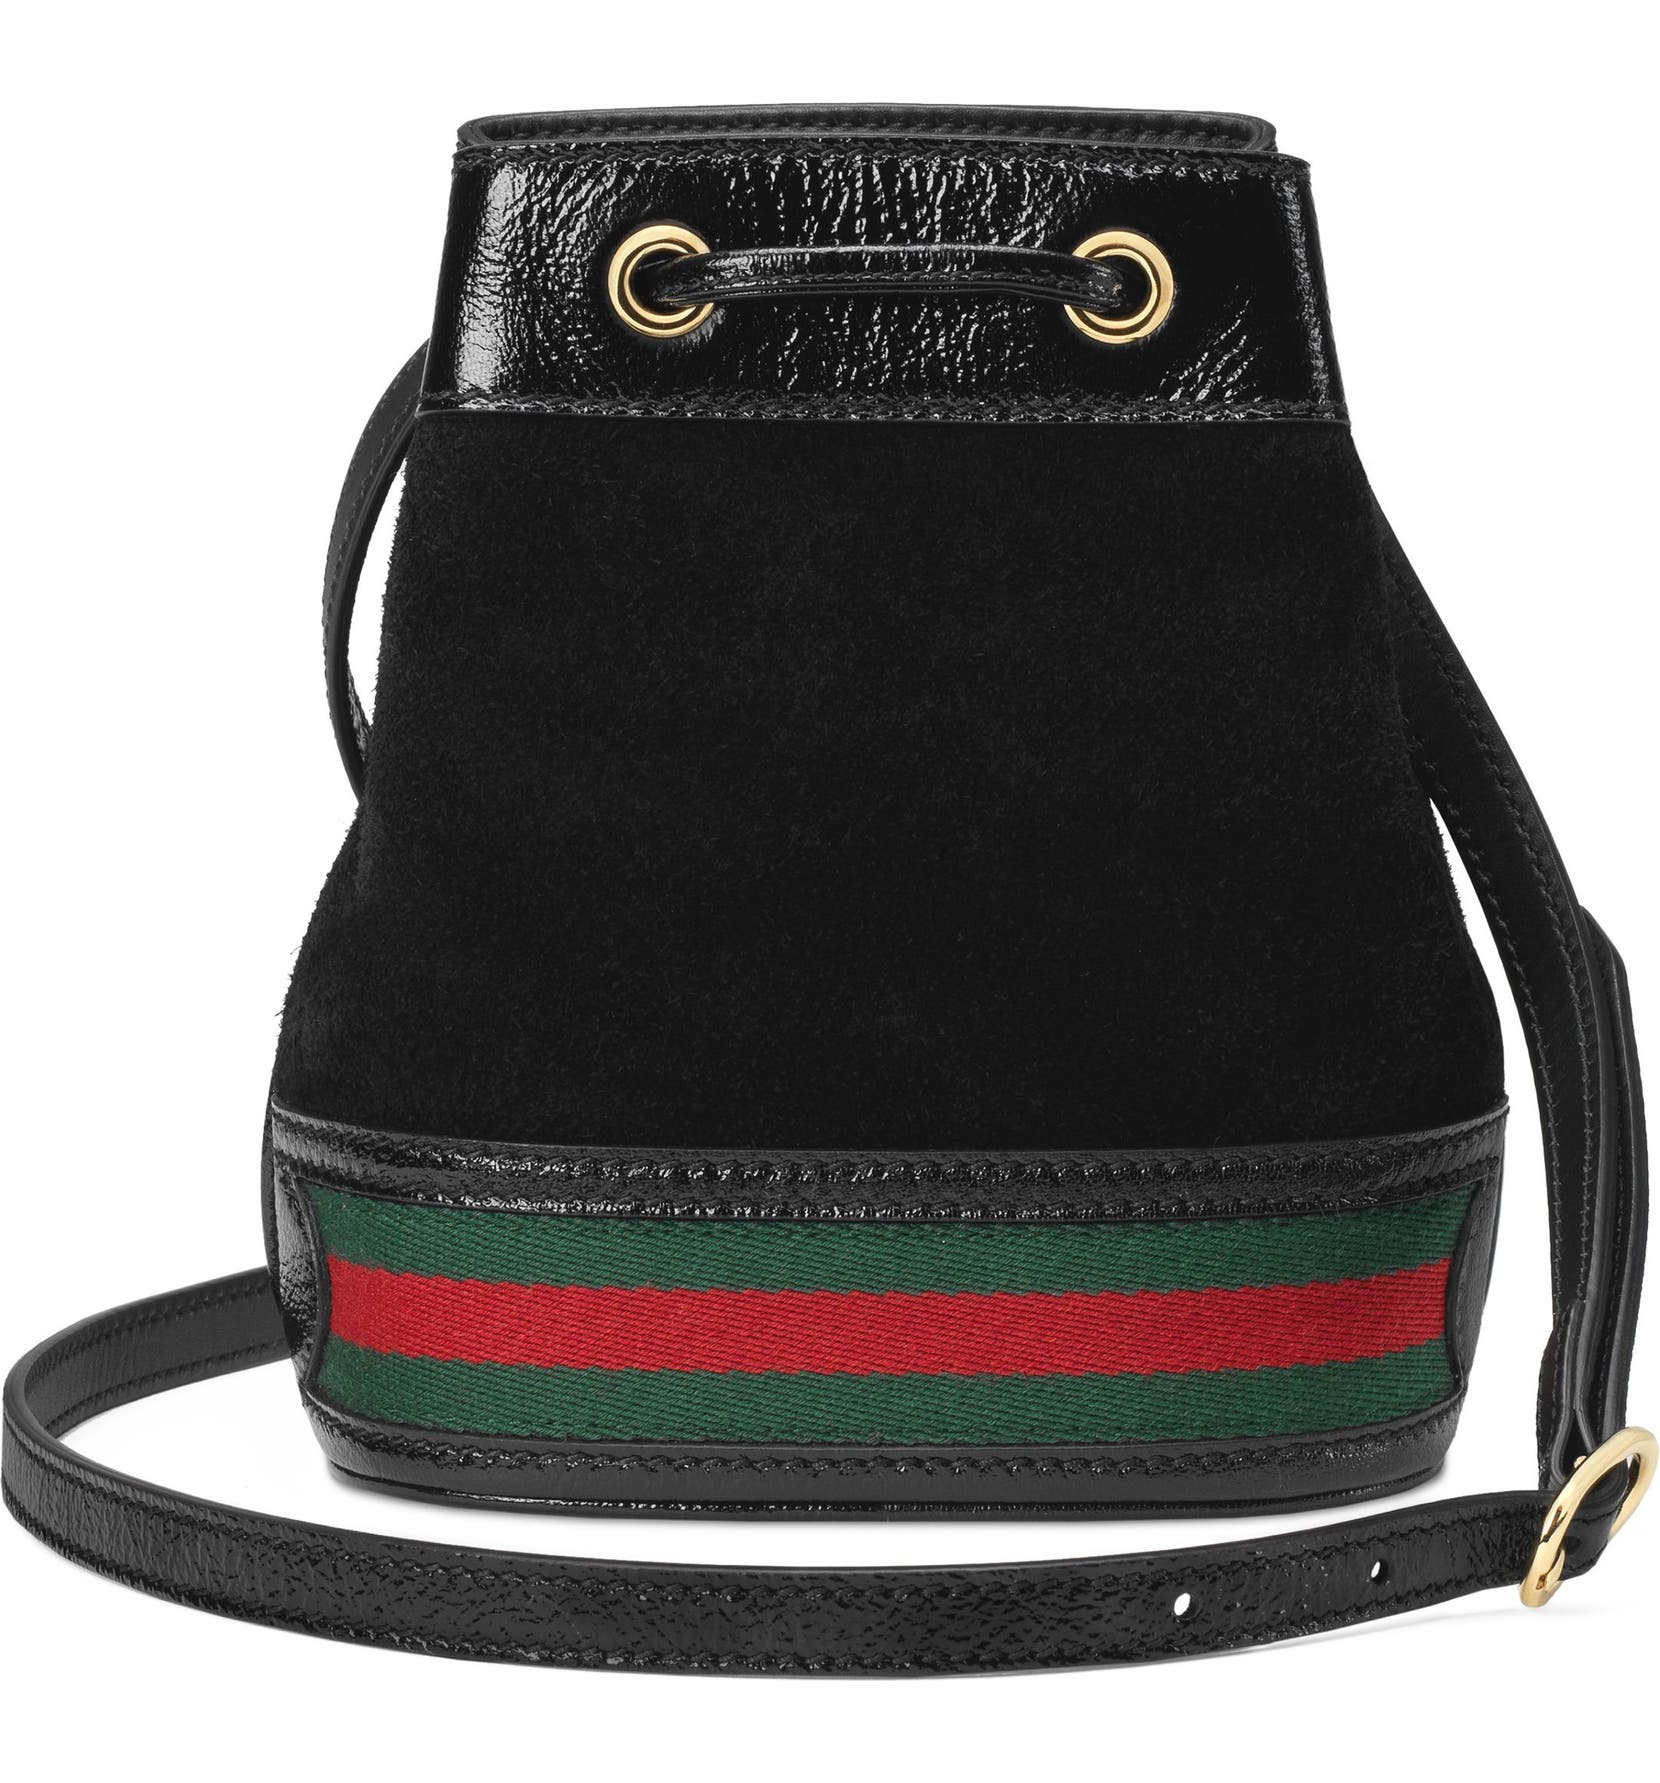 910f9d10e Gucci Mini Ophidia Suede & Leather Bucket Bag | Nordstrom